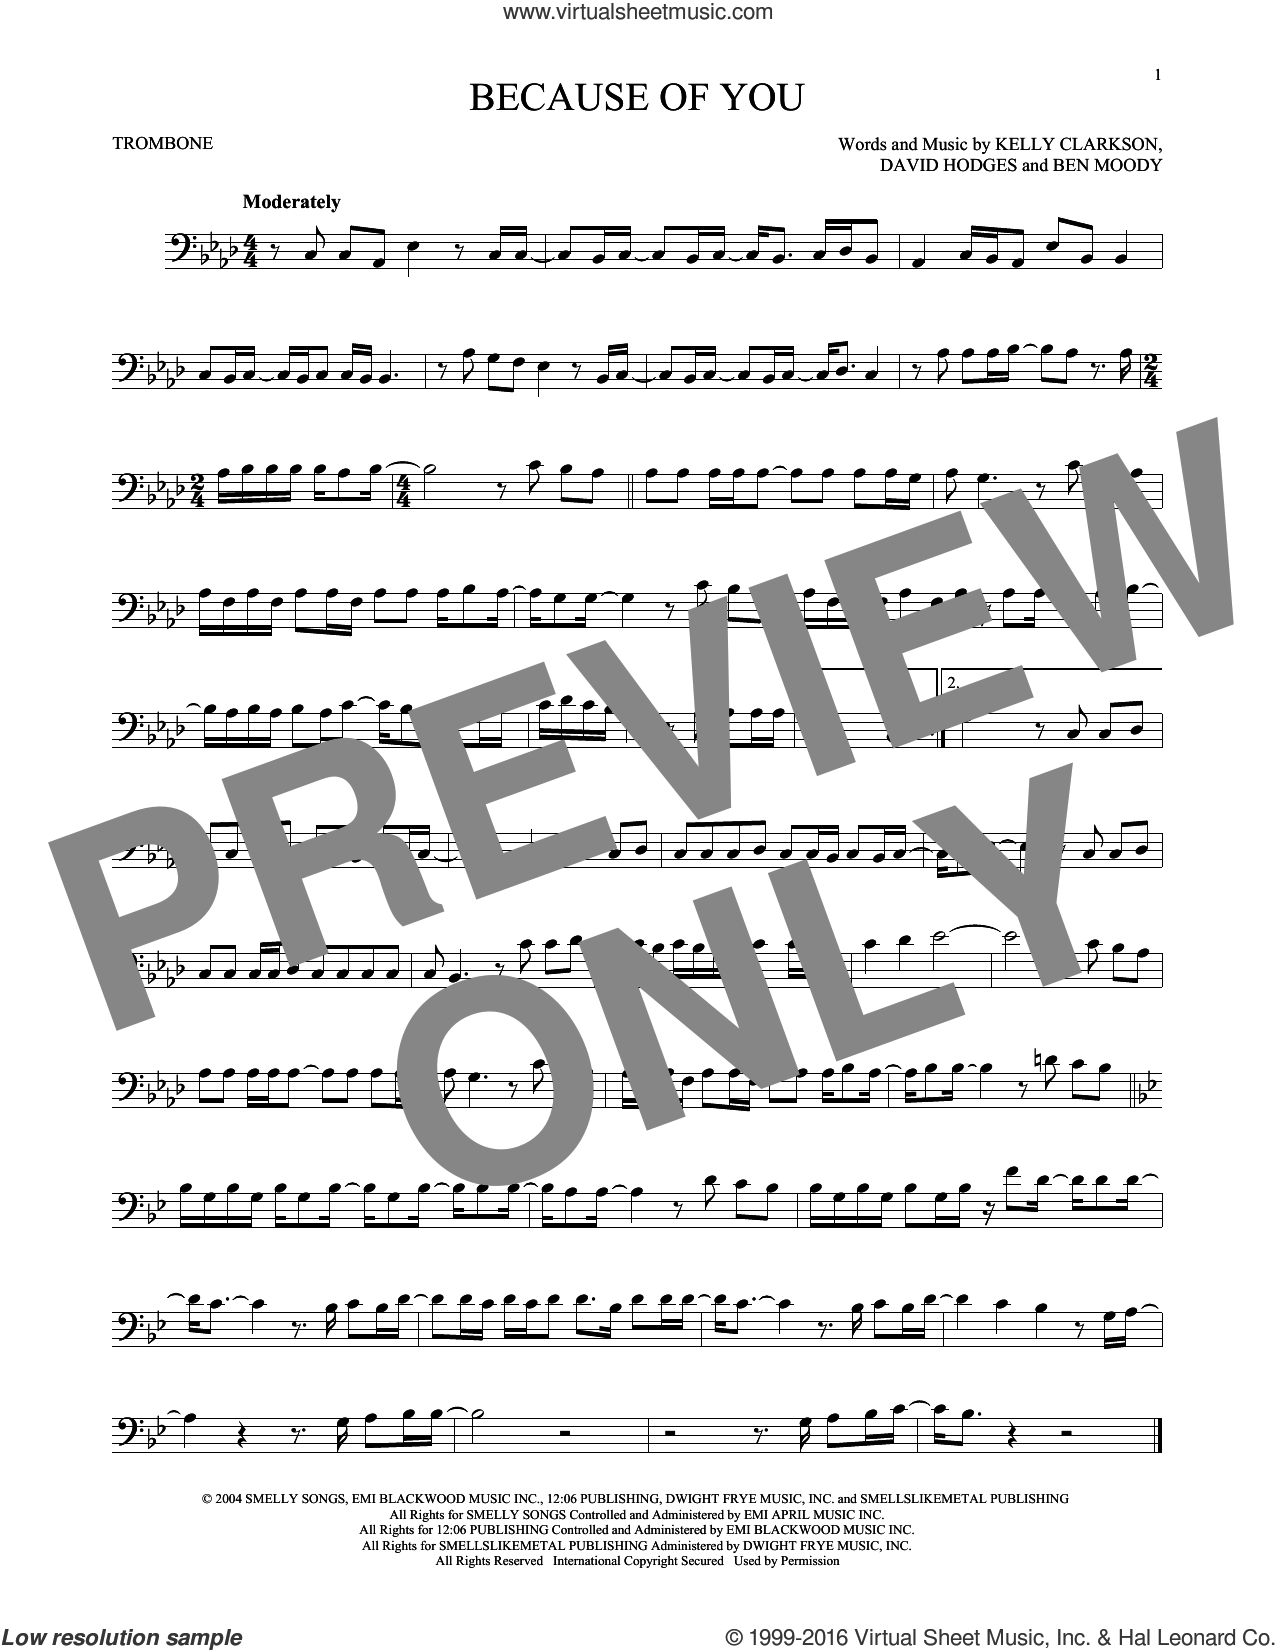 Because Of You sheet music for trombone solo by Kelly Clarkson, Ben Moody and David Hodges, intermediate skill level